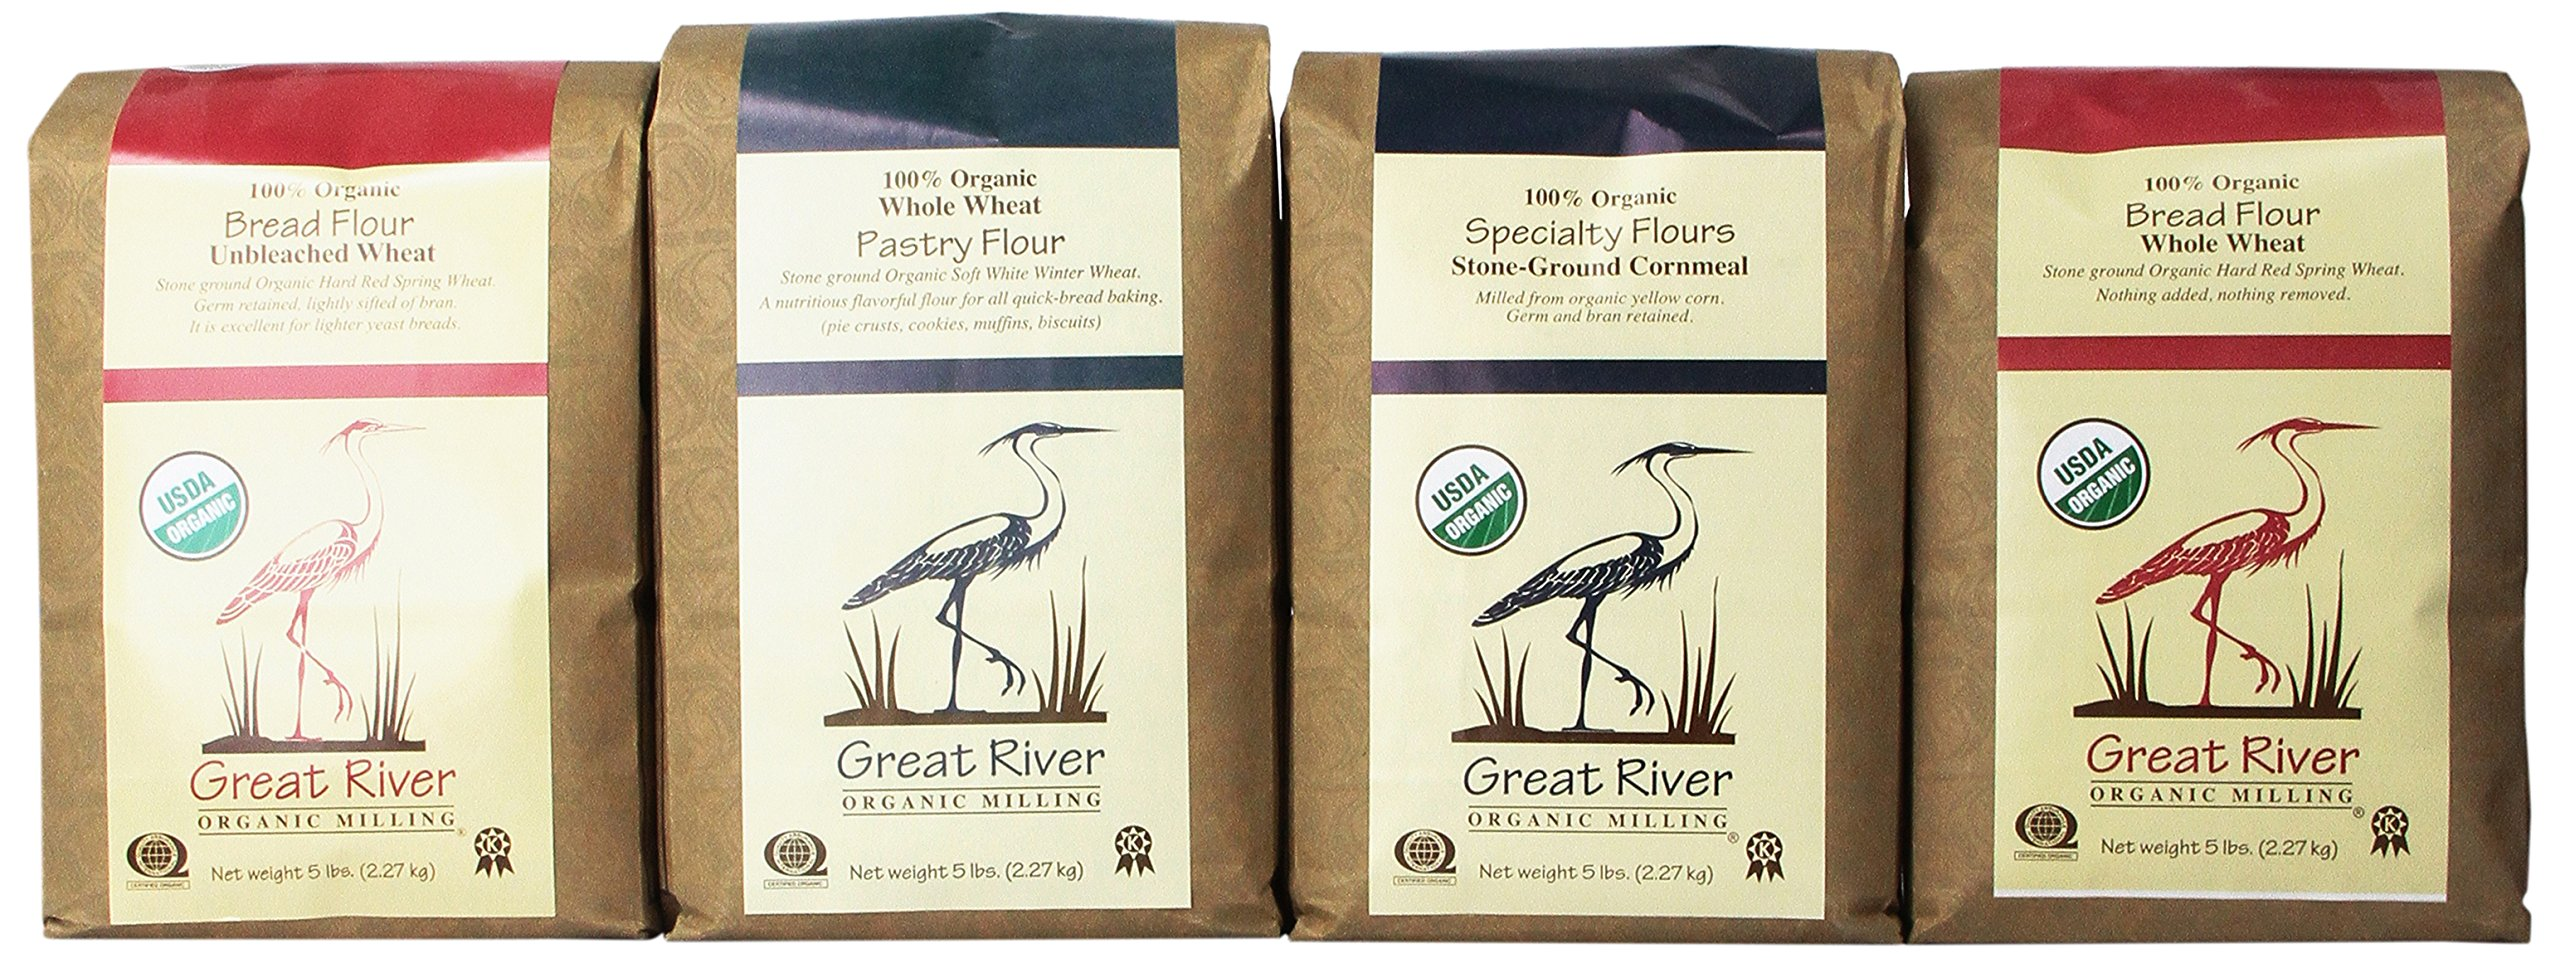 Great River Organic Milling Baker's Gift Set, 4 Pack, 5-Pound (pack of 4)